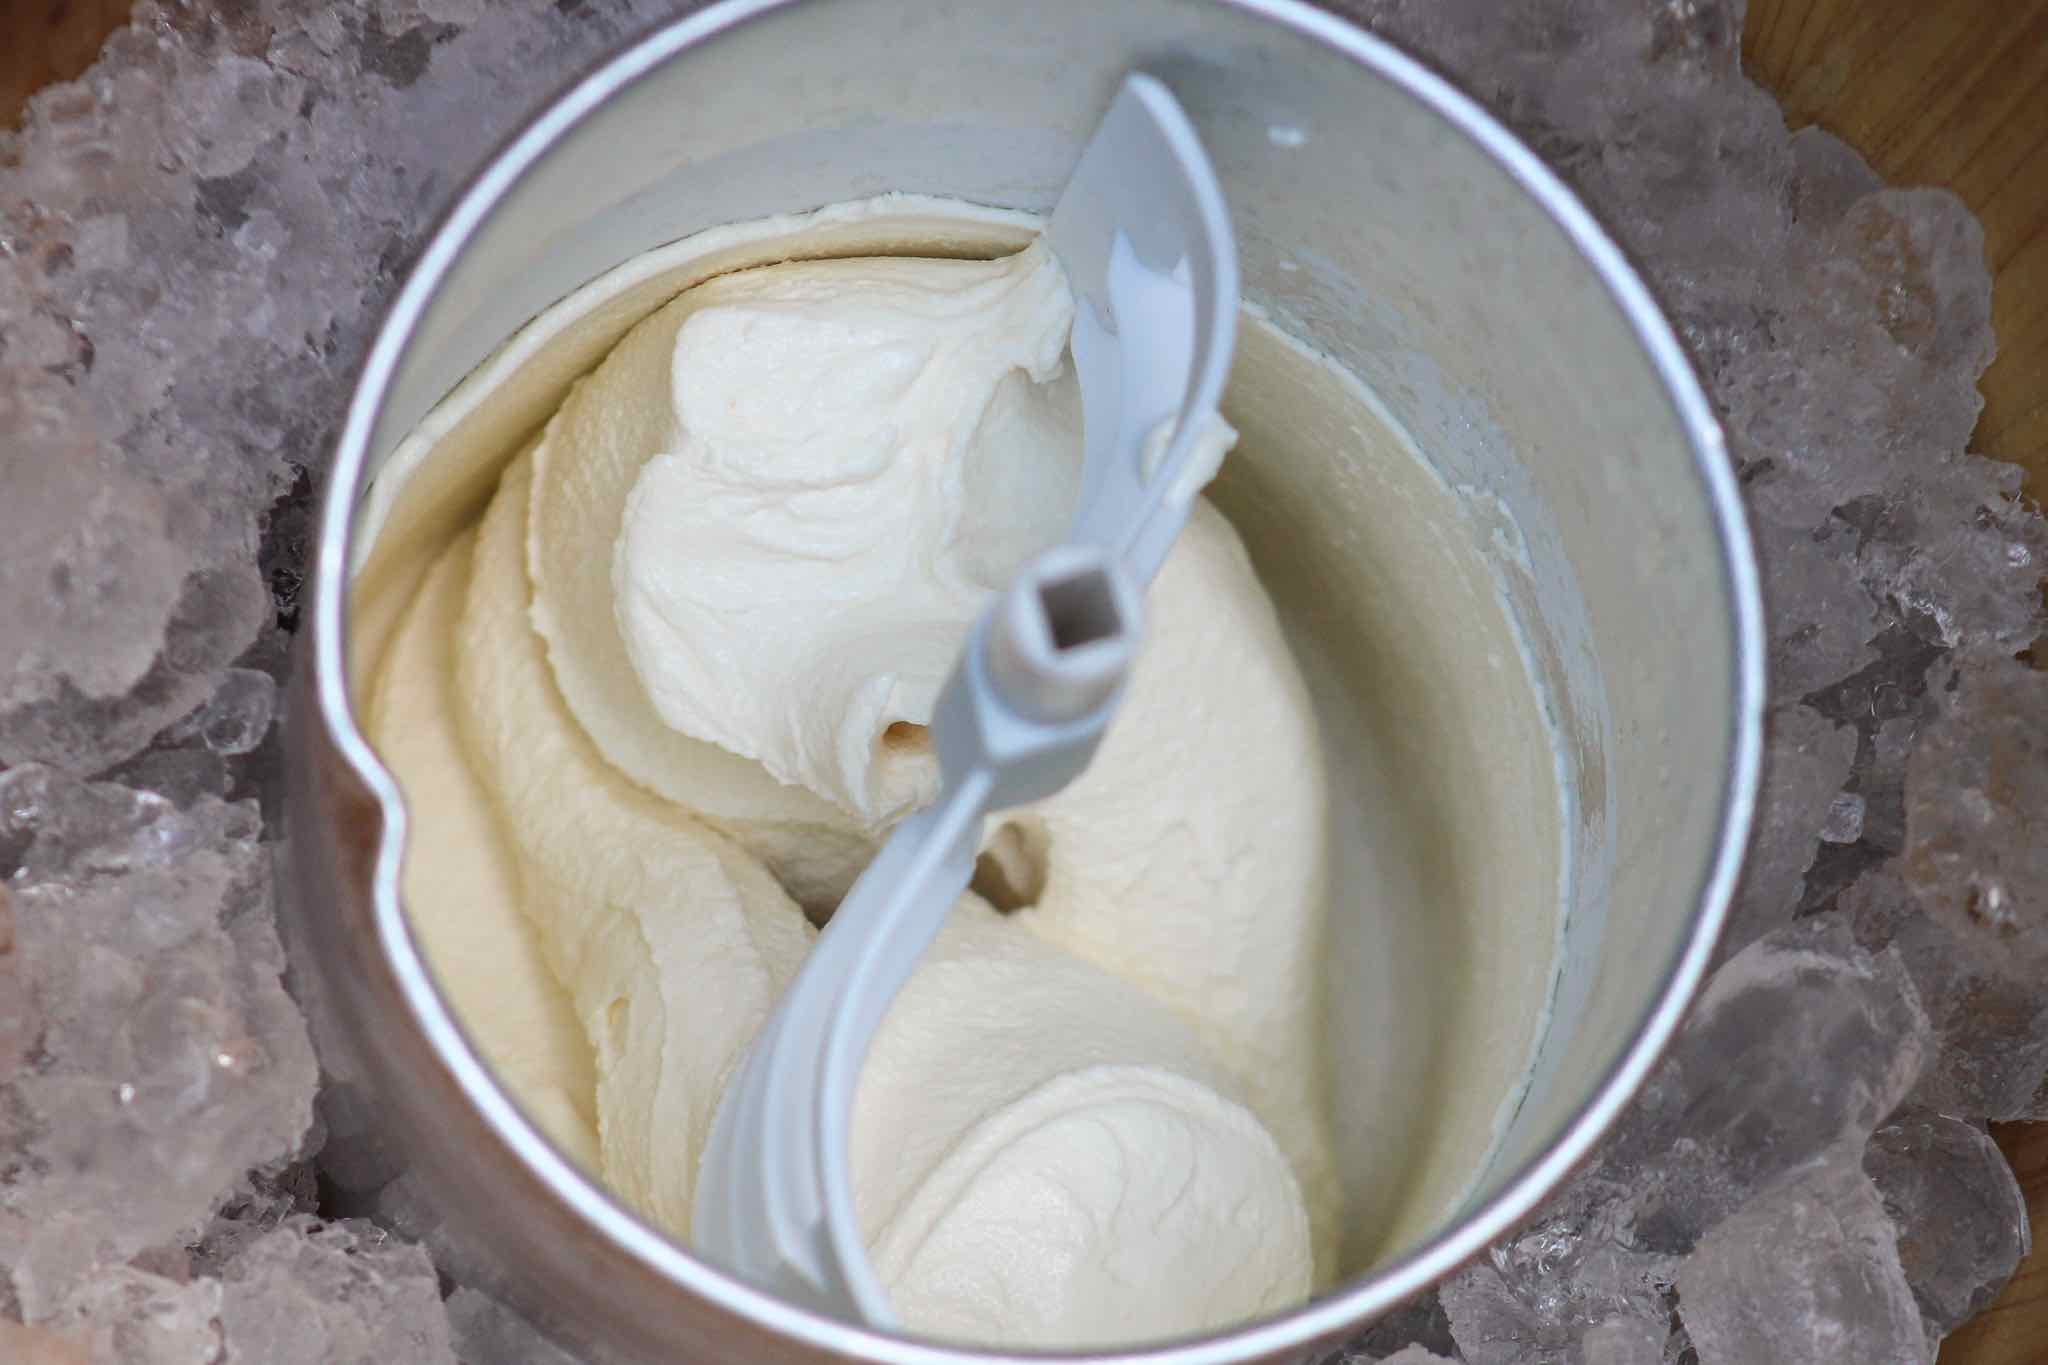 finished ice cream in ice cream maker